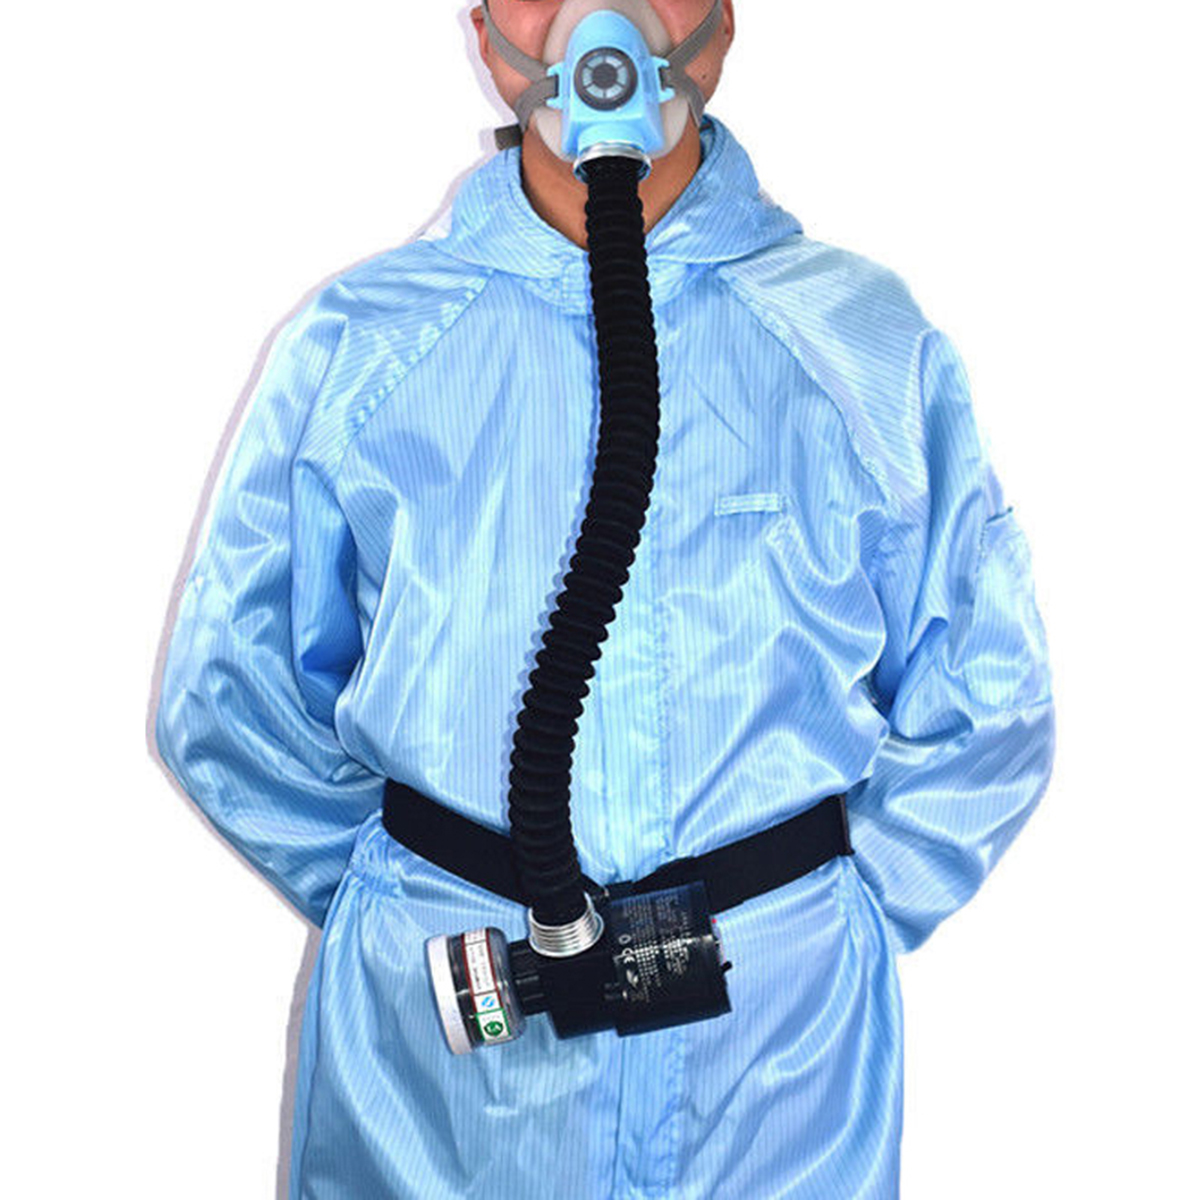 Electric Constant Flow Supplied Air Fed Face Gas Mask Spray Painting Anti Dust Mask Protection Anti-fog Haze industry Respirator 11 in 1 suit 3m 6200 half face mask with 2091 industry paint spray work respirator mask anti dust respirator fliters